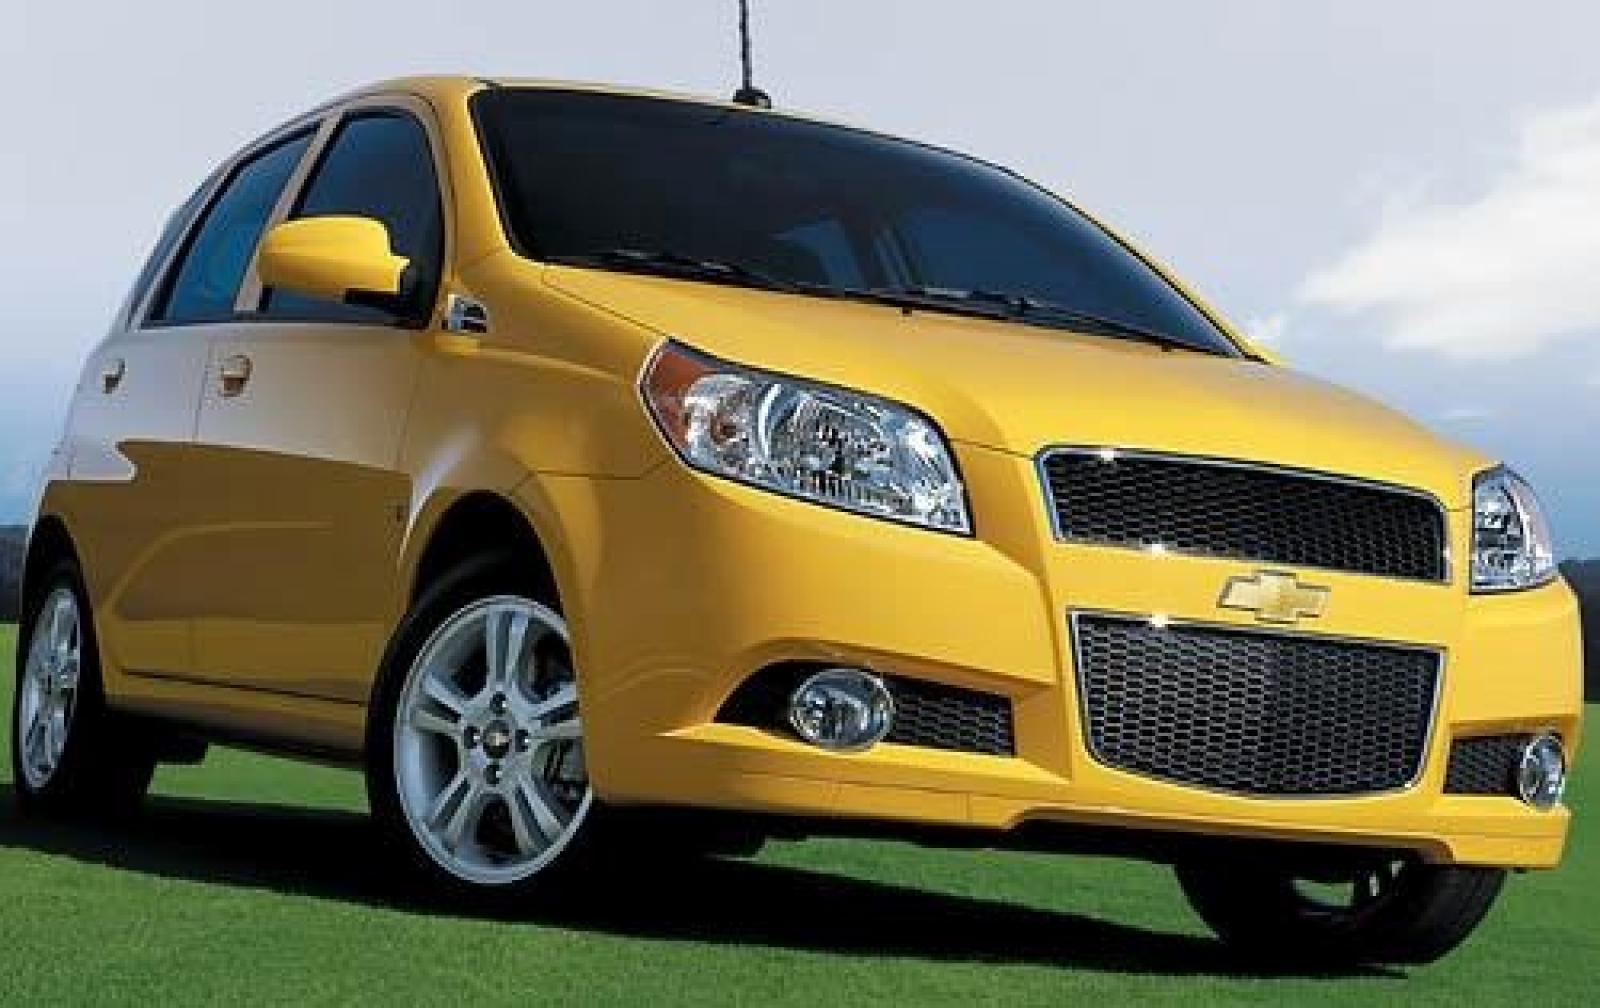 2010 chevrolet aveo information and photos zombiedrive. Black Bedroom Furniture Sets. Home Design Ideas